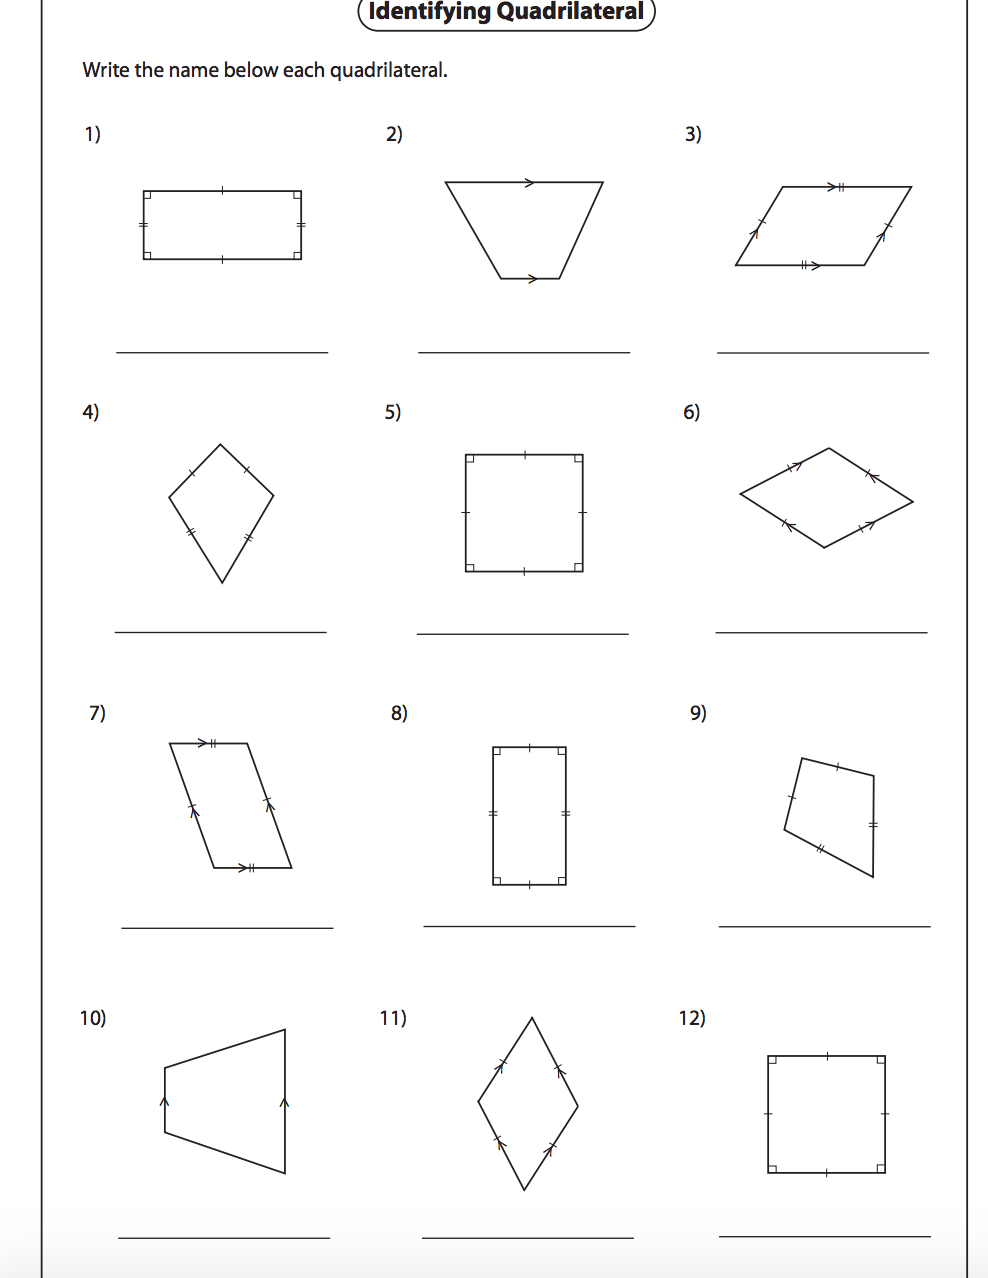 medium resolution of Classifying Quadrilaterals Worksheet - NMS Self-Paced Math